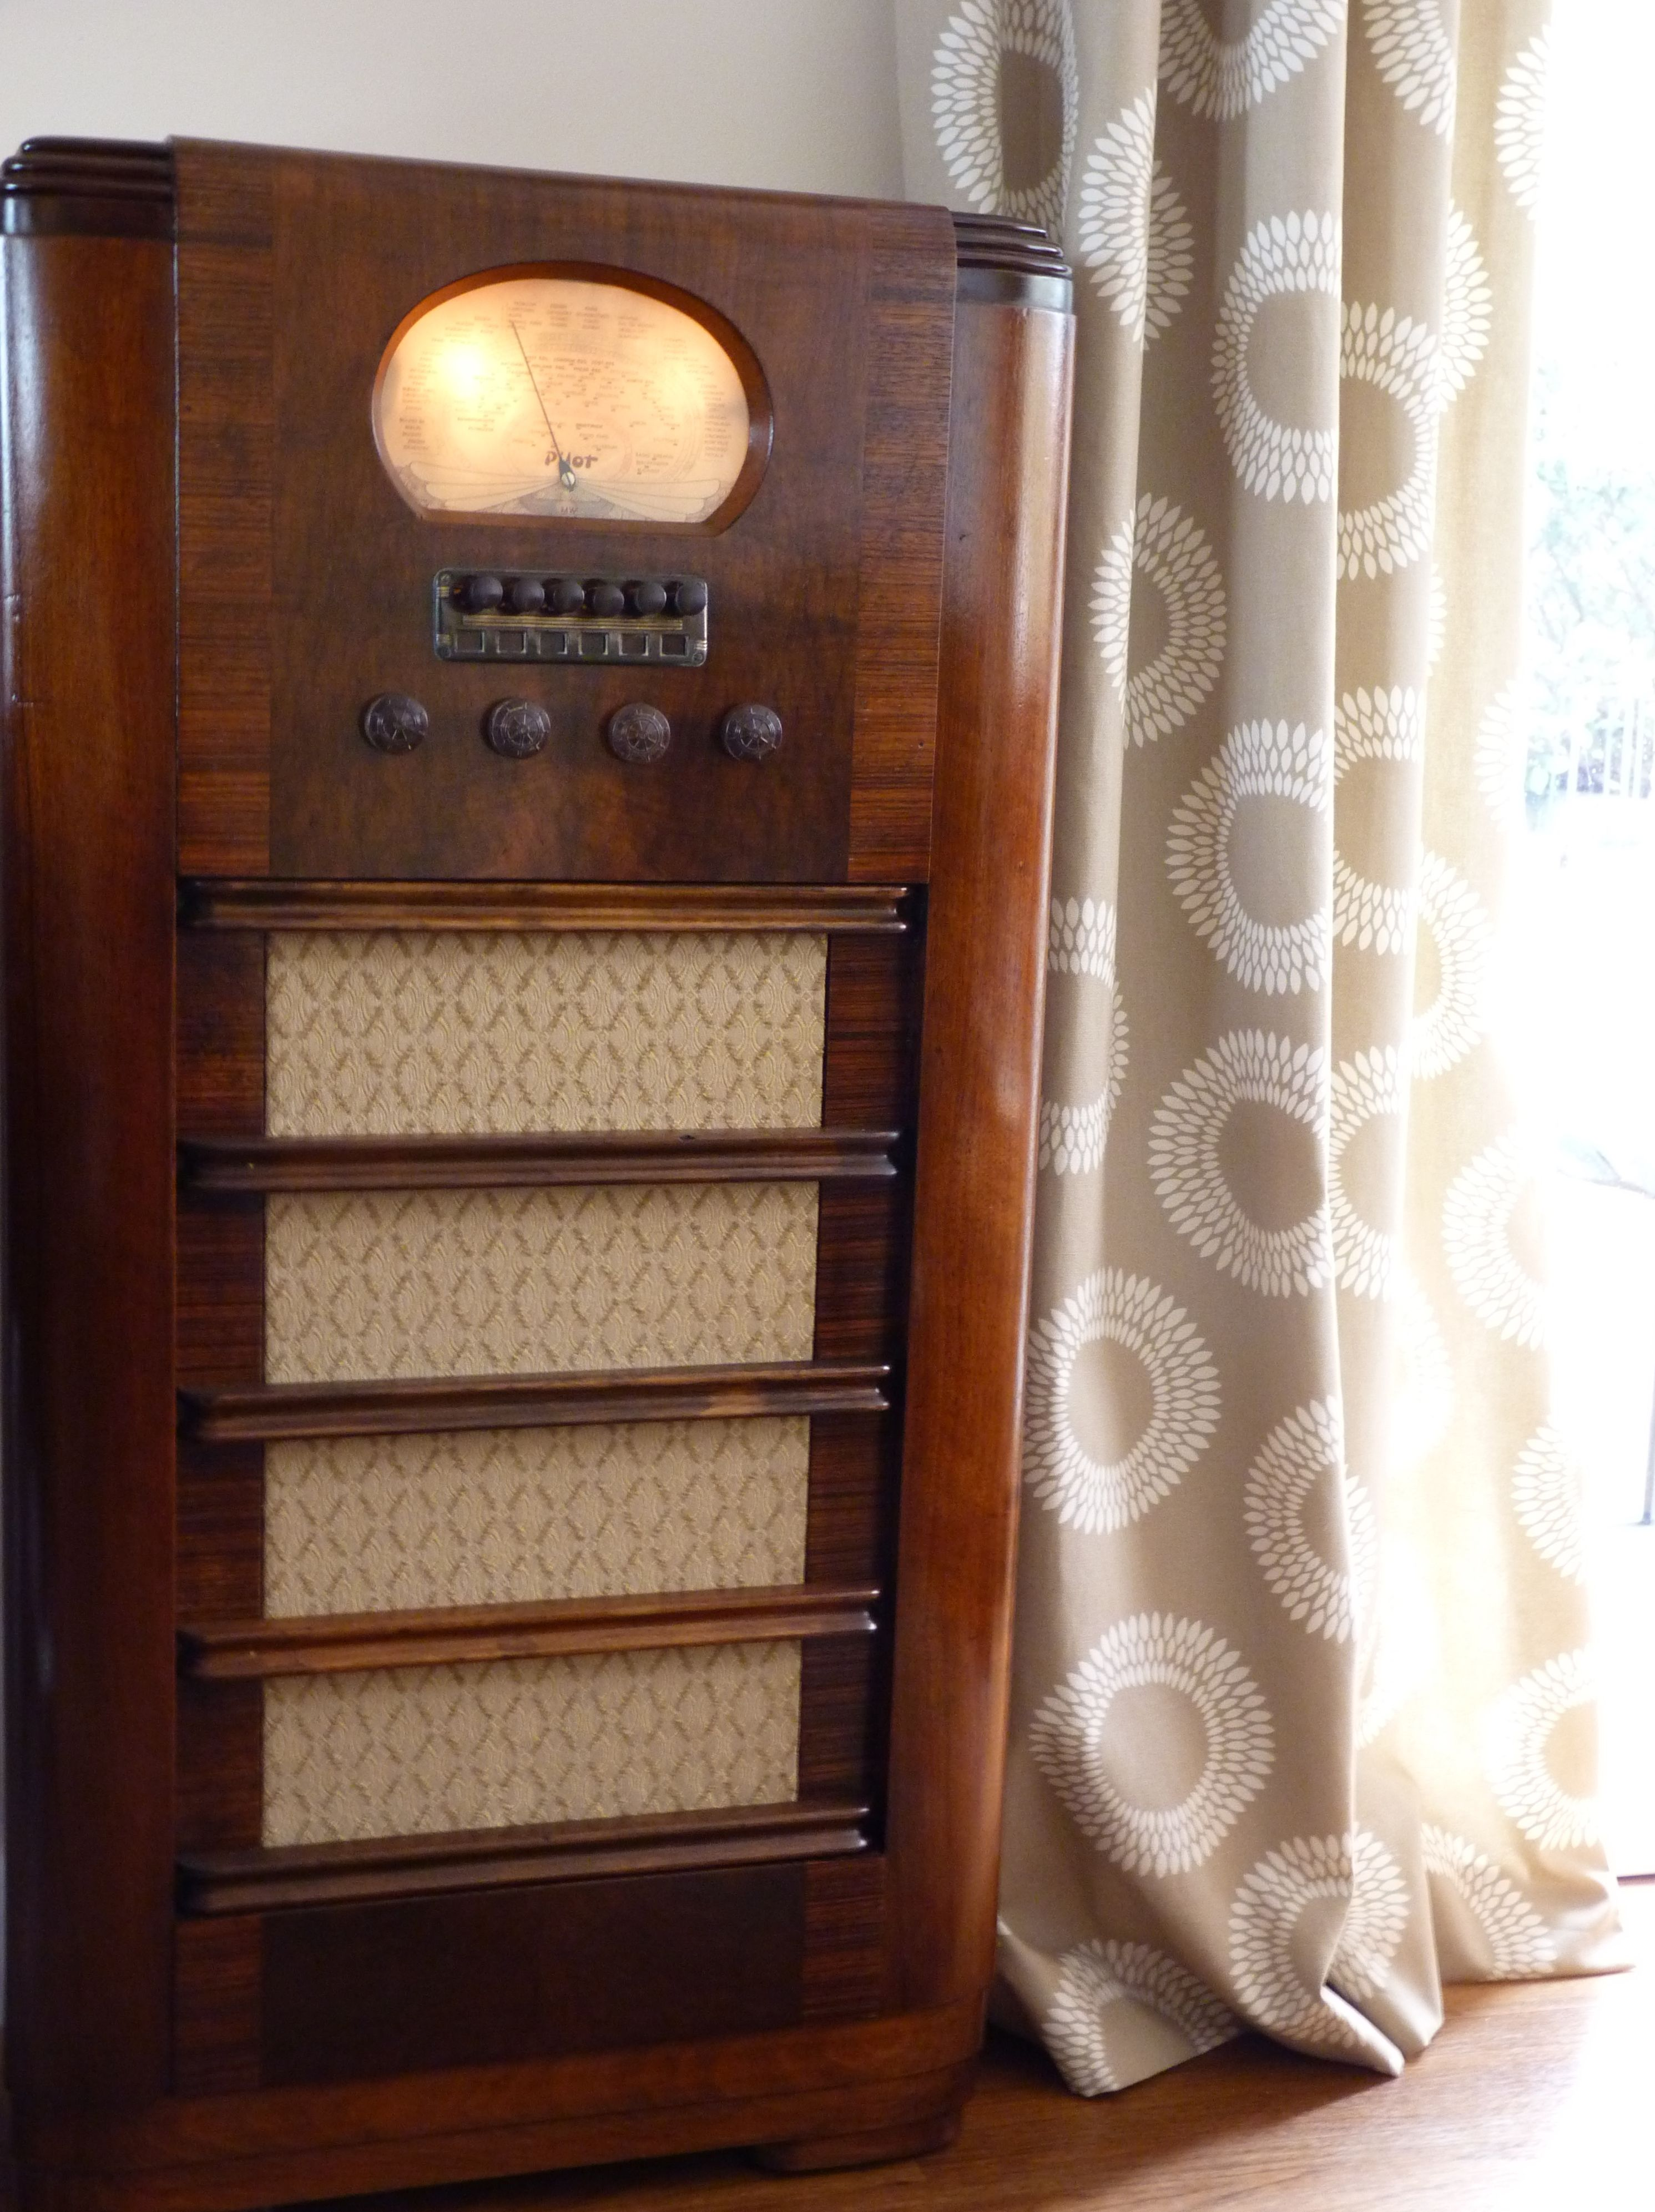 Fully Restored 1938 Floor Standing Pilot Radio Behold A